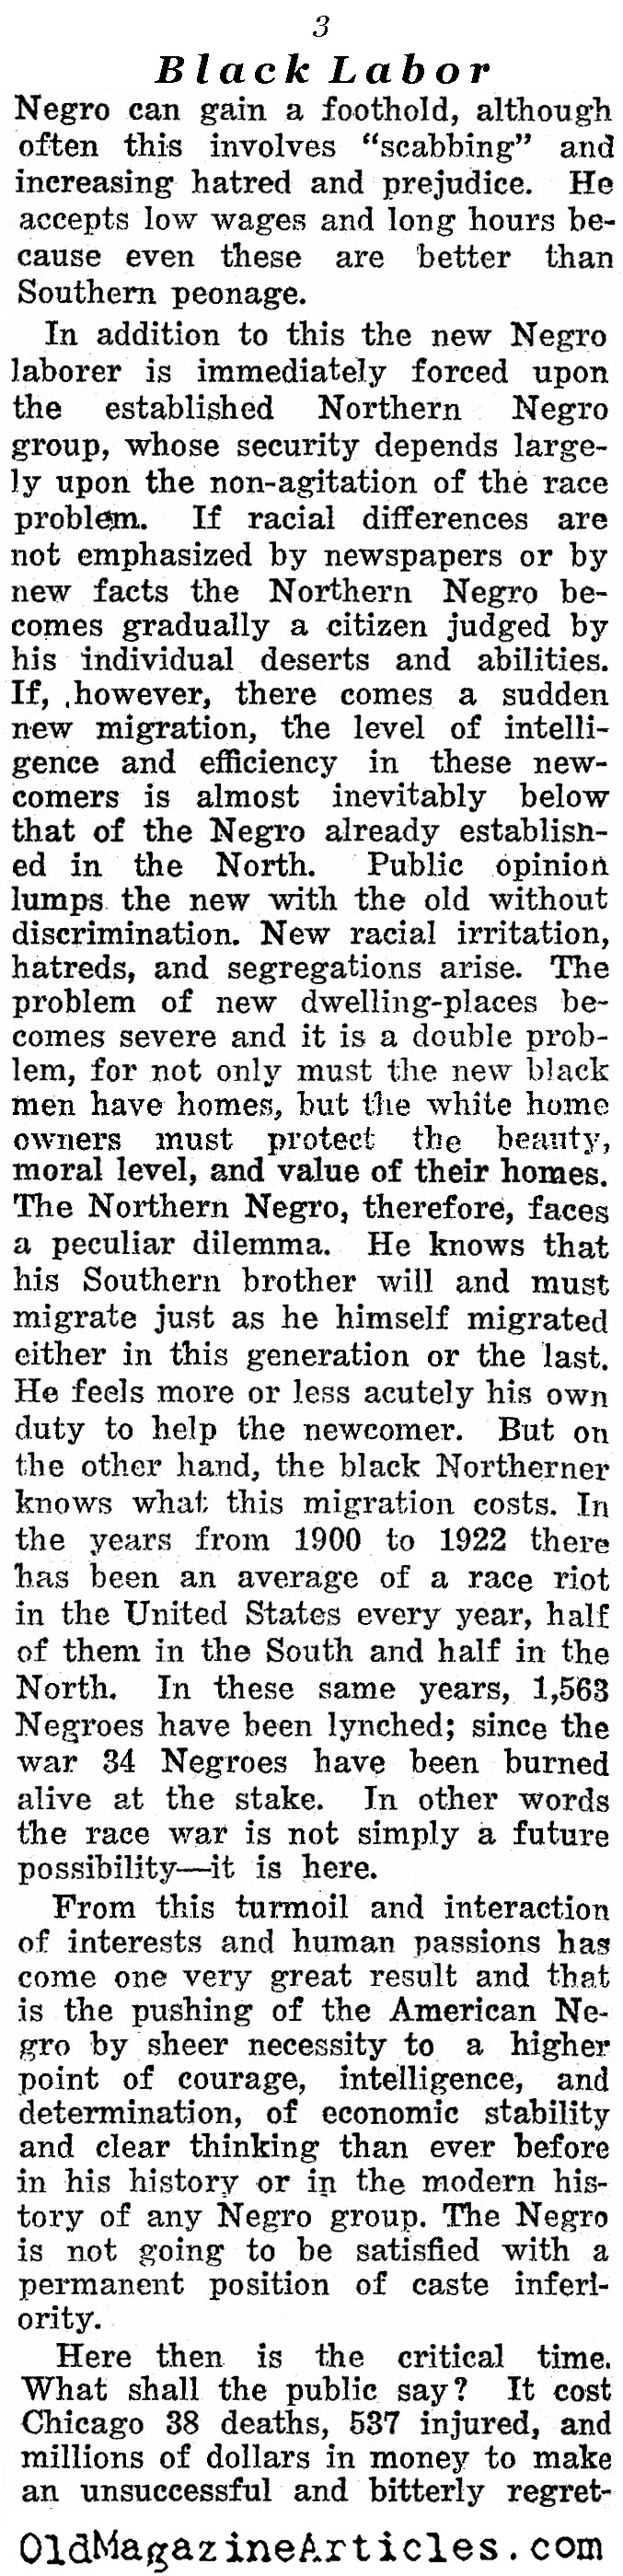 W.E.B. DuBois on Black Labor (Reader's Digest, 1923)